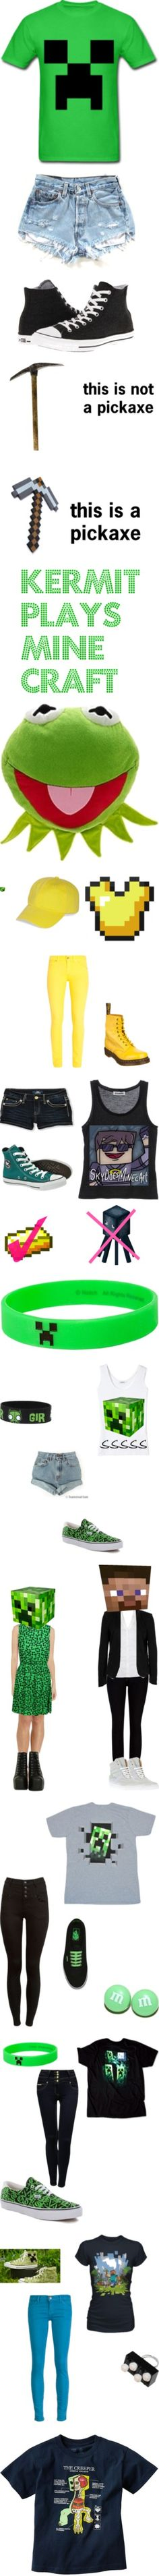 """minecraft33"" by skydoesminecraft ❤ liked on Polyvore"